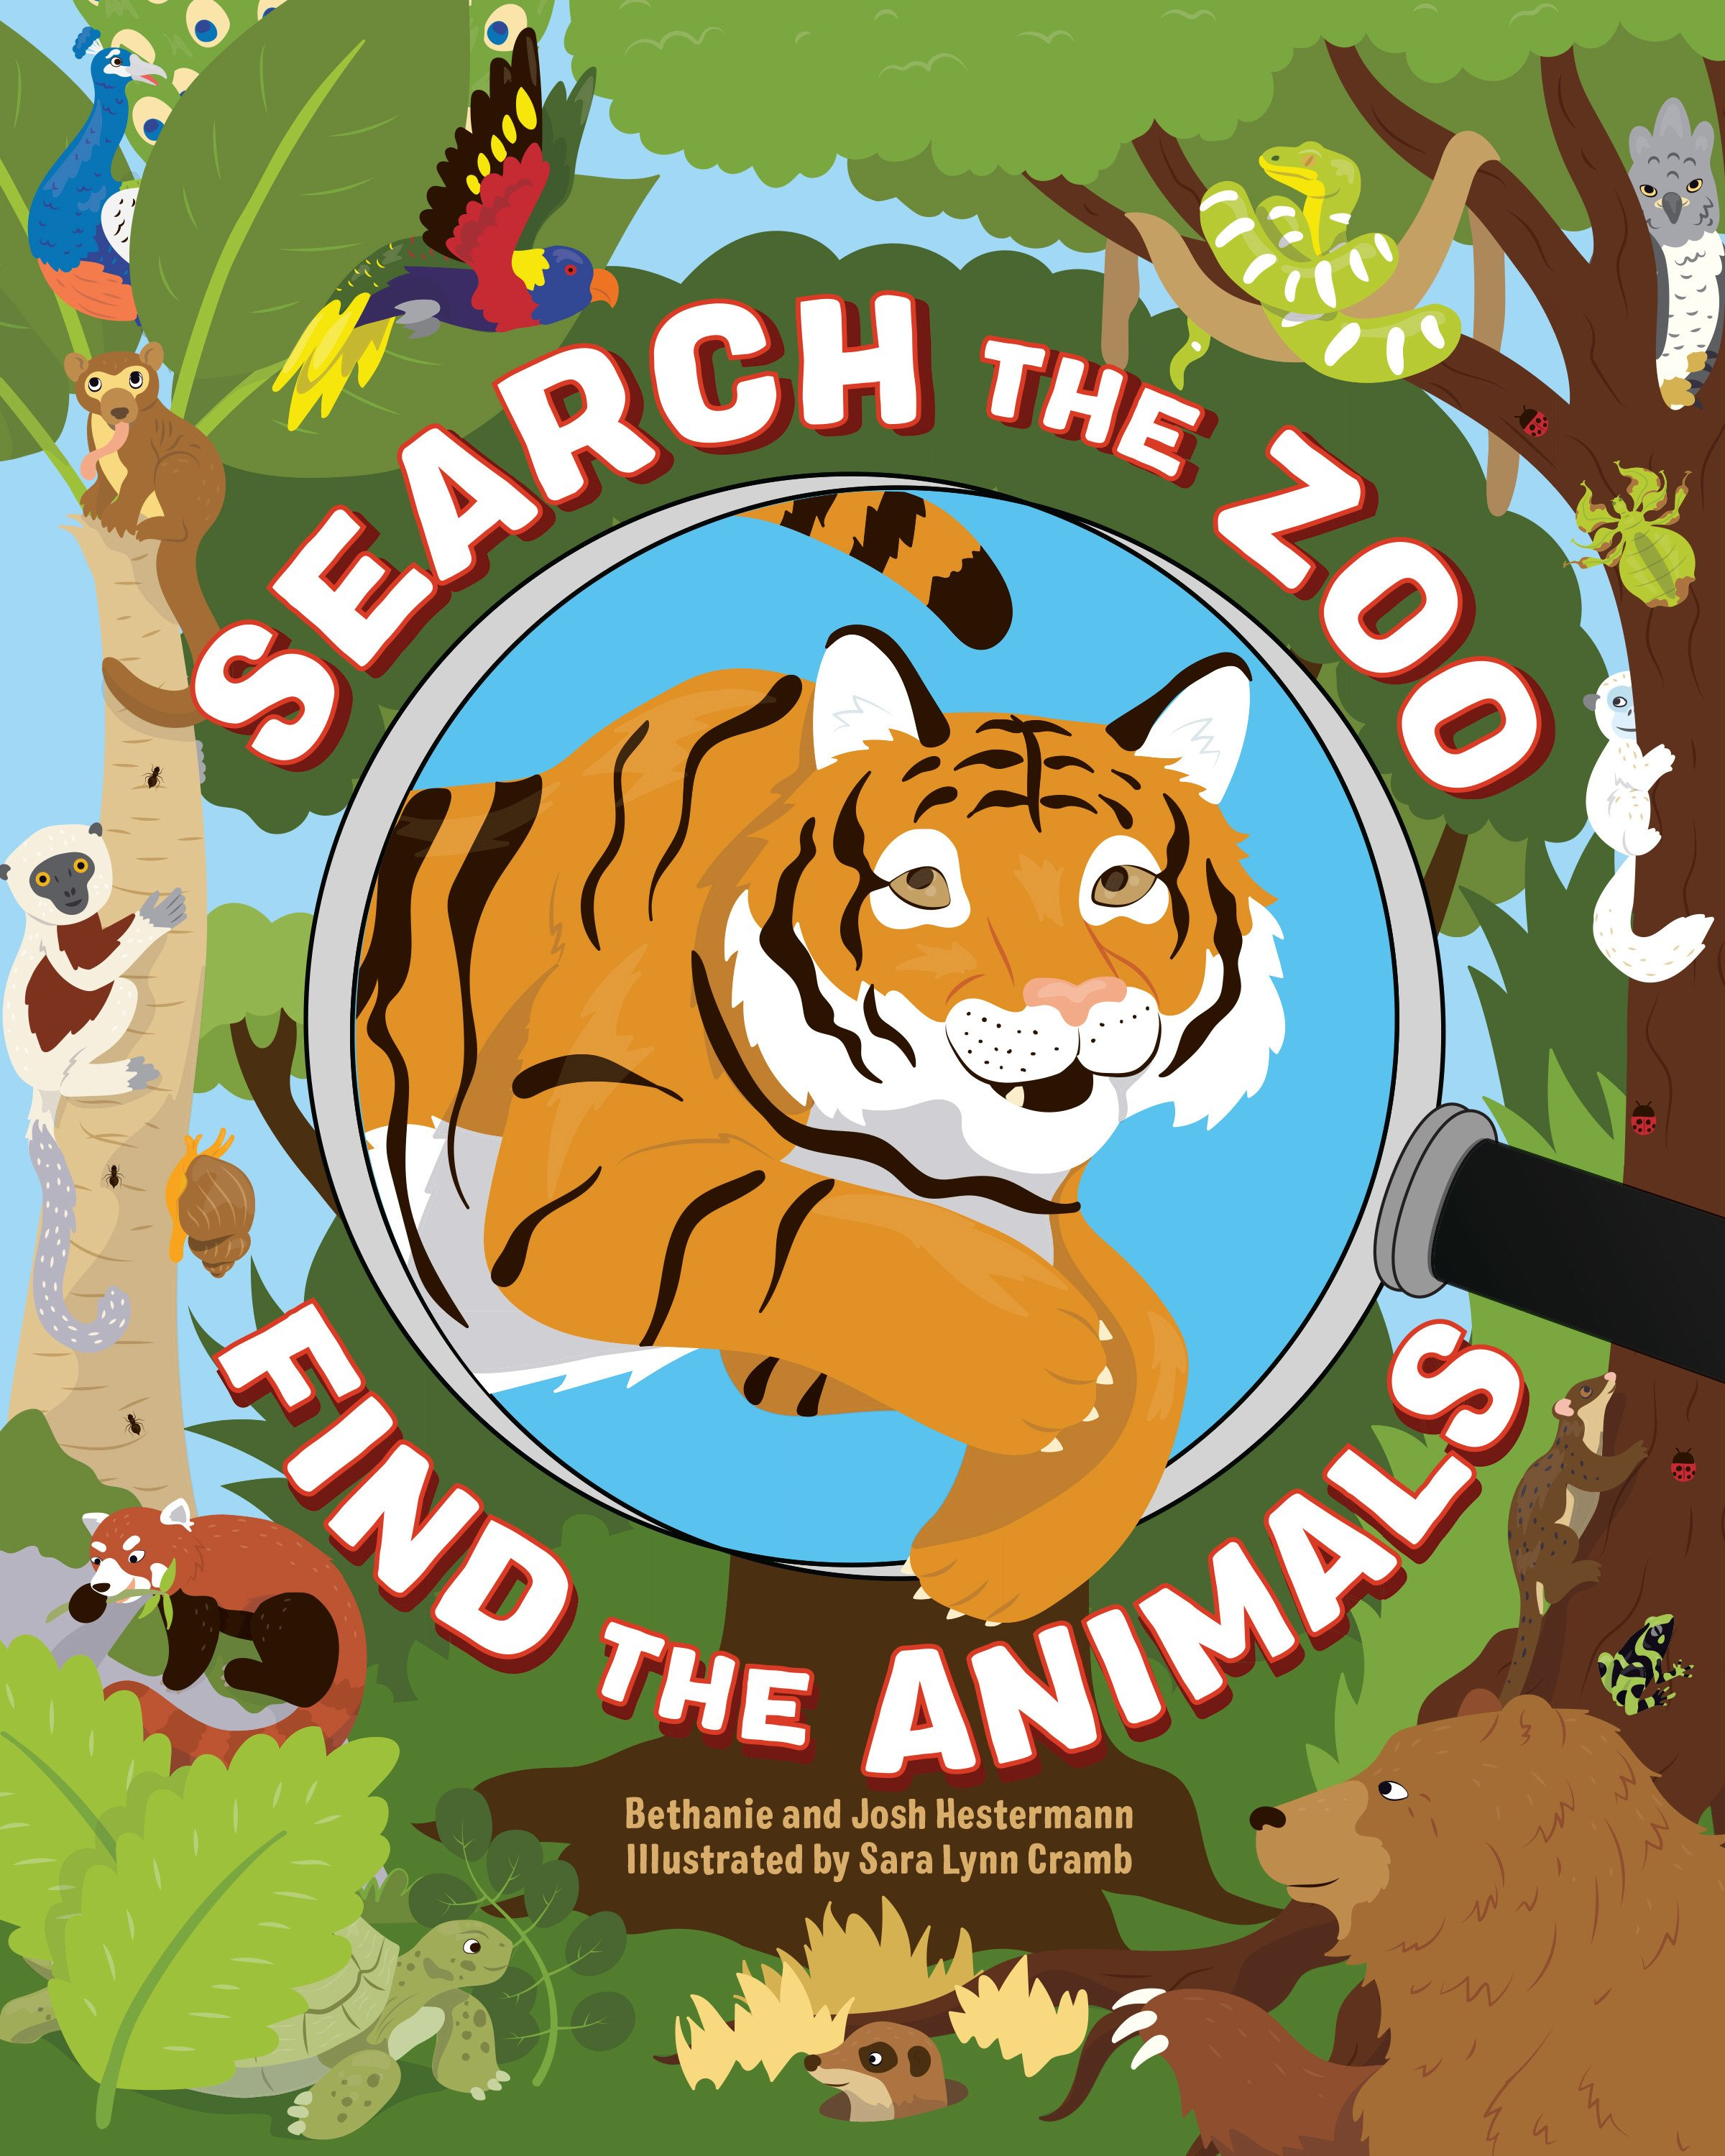 Search the Zoo: Find the Animals